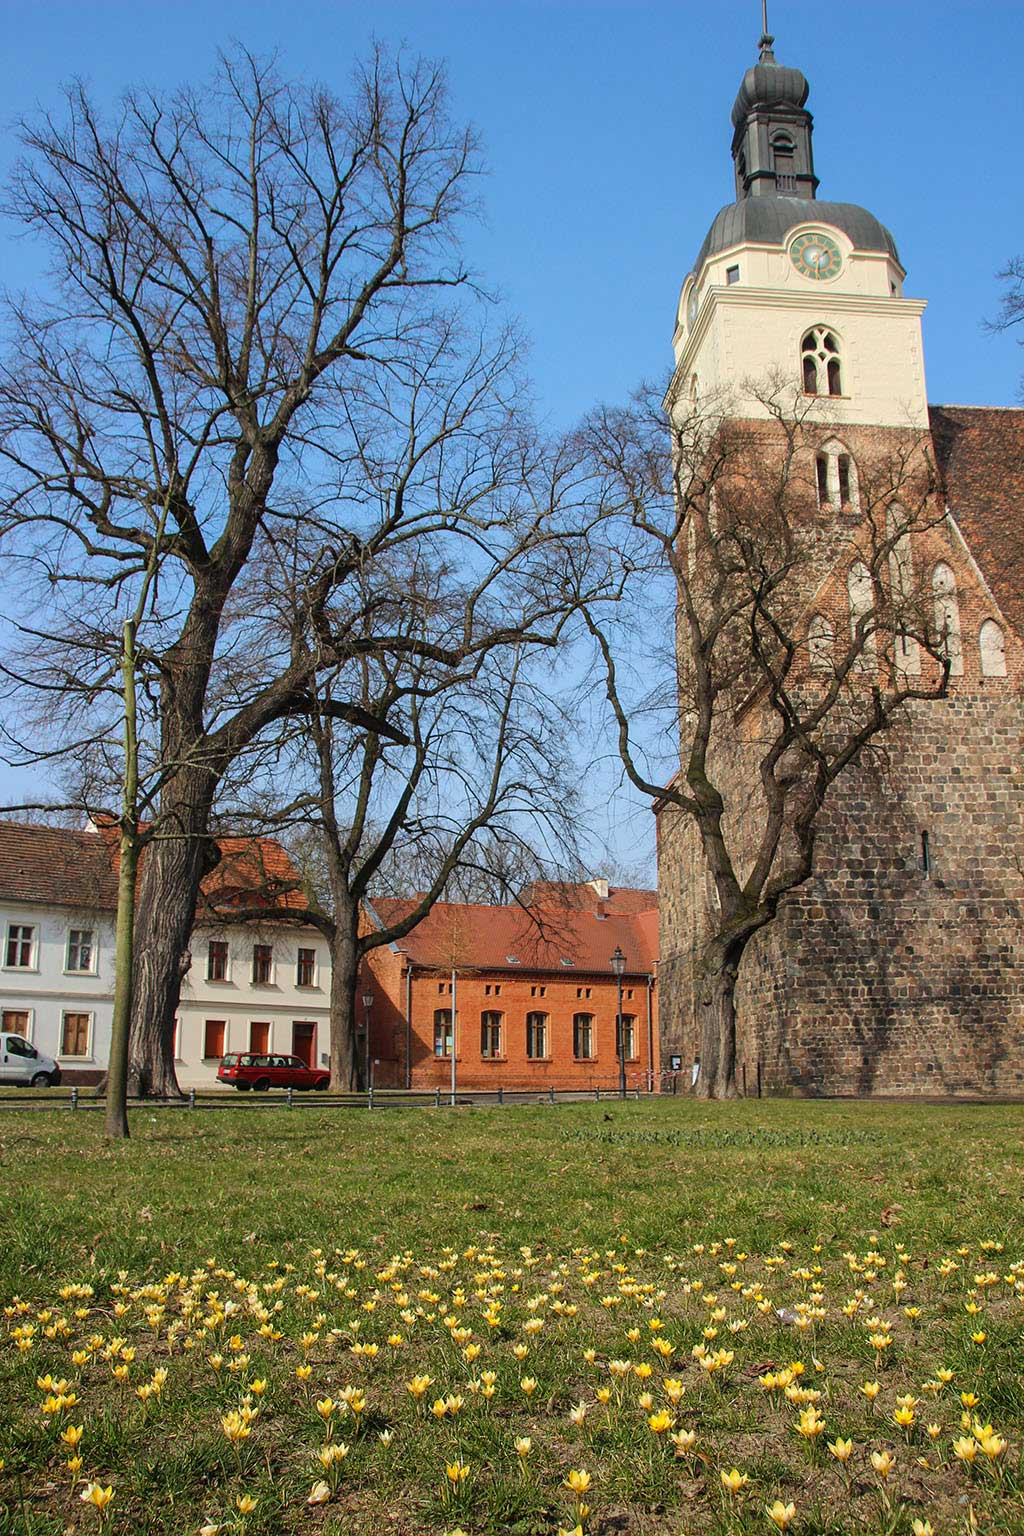 St. Gotthardtkirche in Brandenburg an der Havel